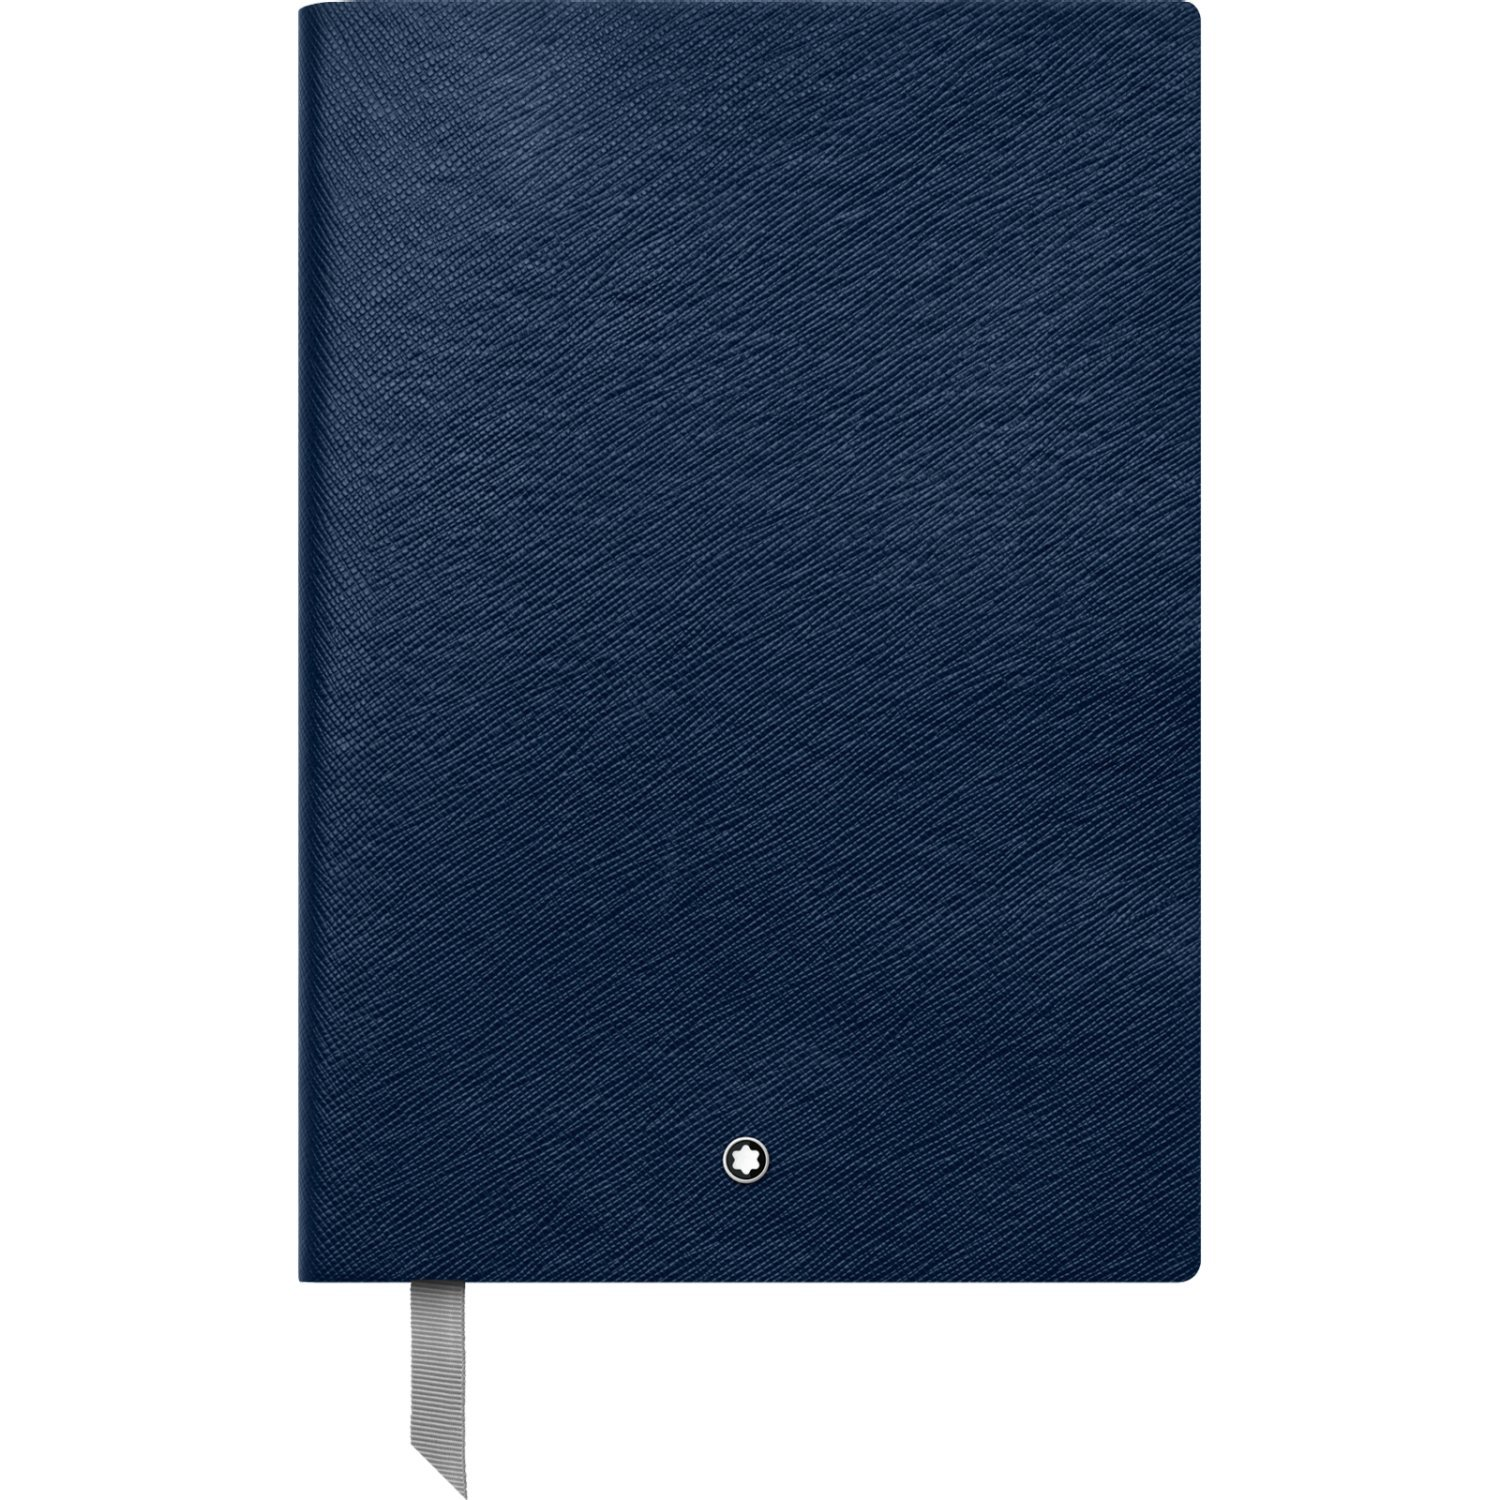 Montblanc Notebook Indigo Lined #146 Fine Stationery 113593 - Elegant Journal with Leather Binding and Ruled Pages - 1 x (5.9 x 8.2 in.)